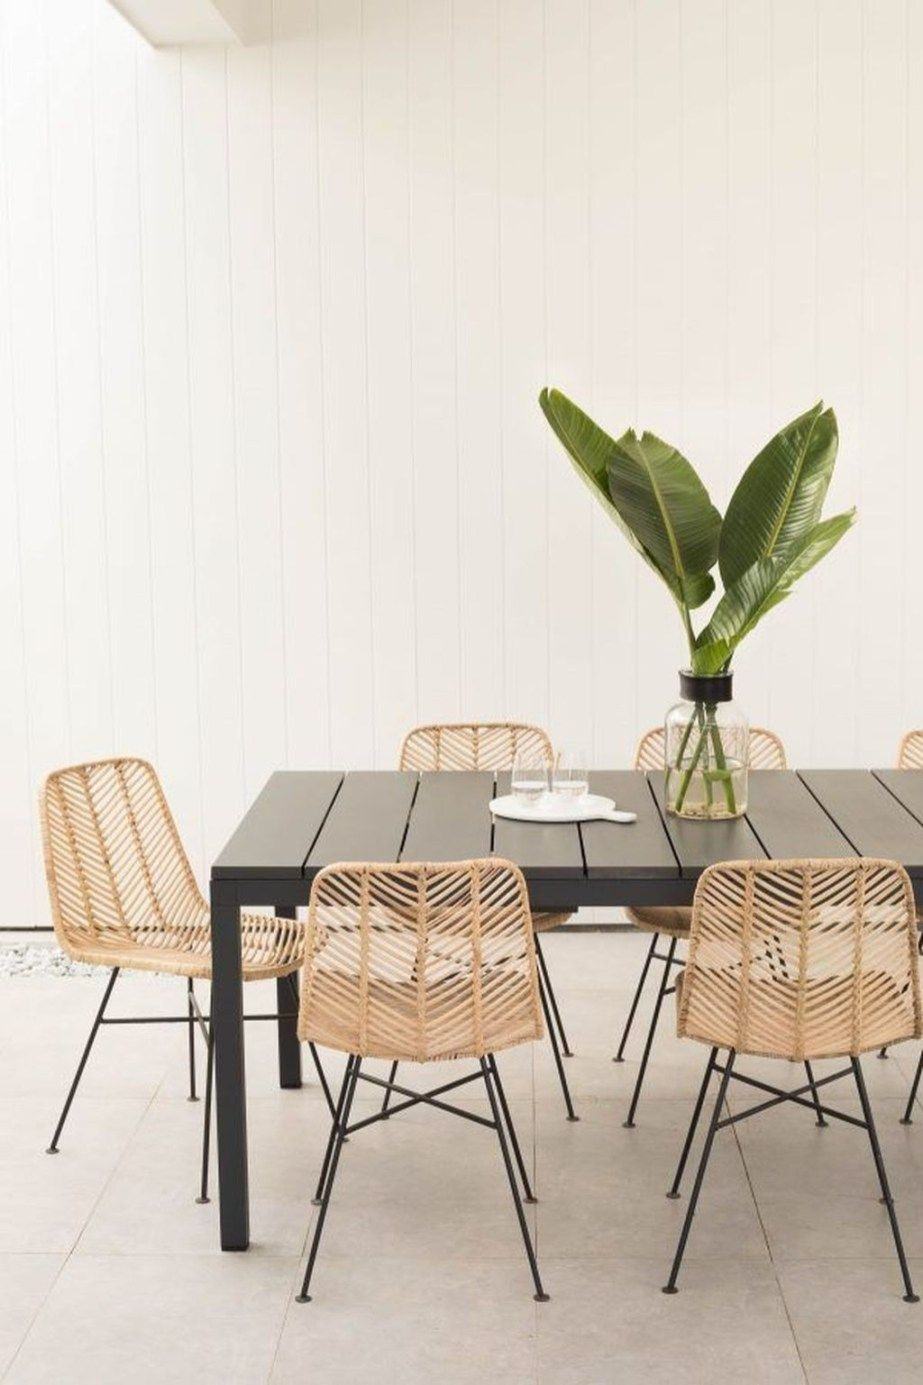 Gorgeous Rattan Furniture Chairs Rattan Dining Chairs Rattan Chair Living Room Dining Chair Loft #rattan #chair #living #room